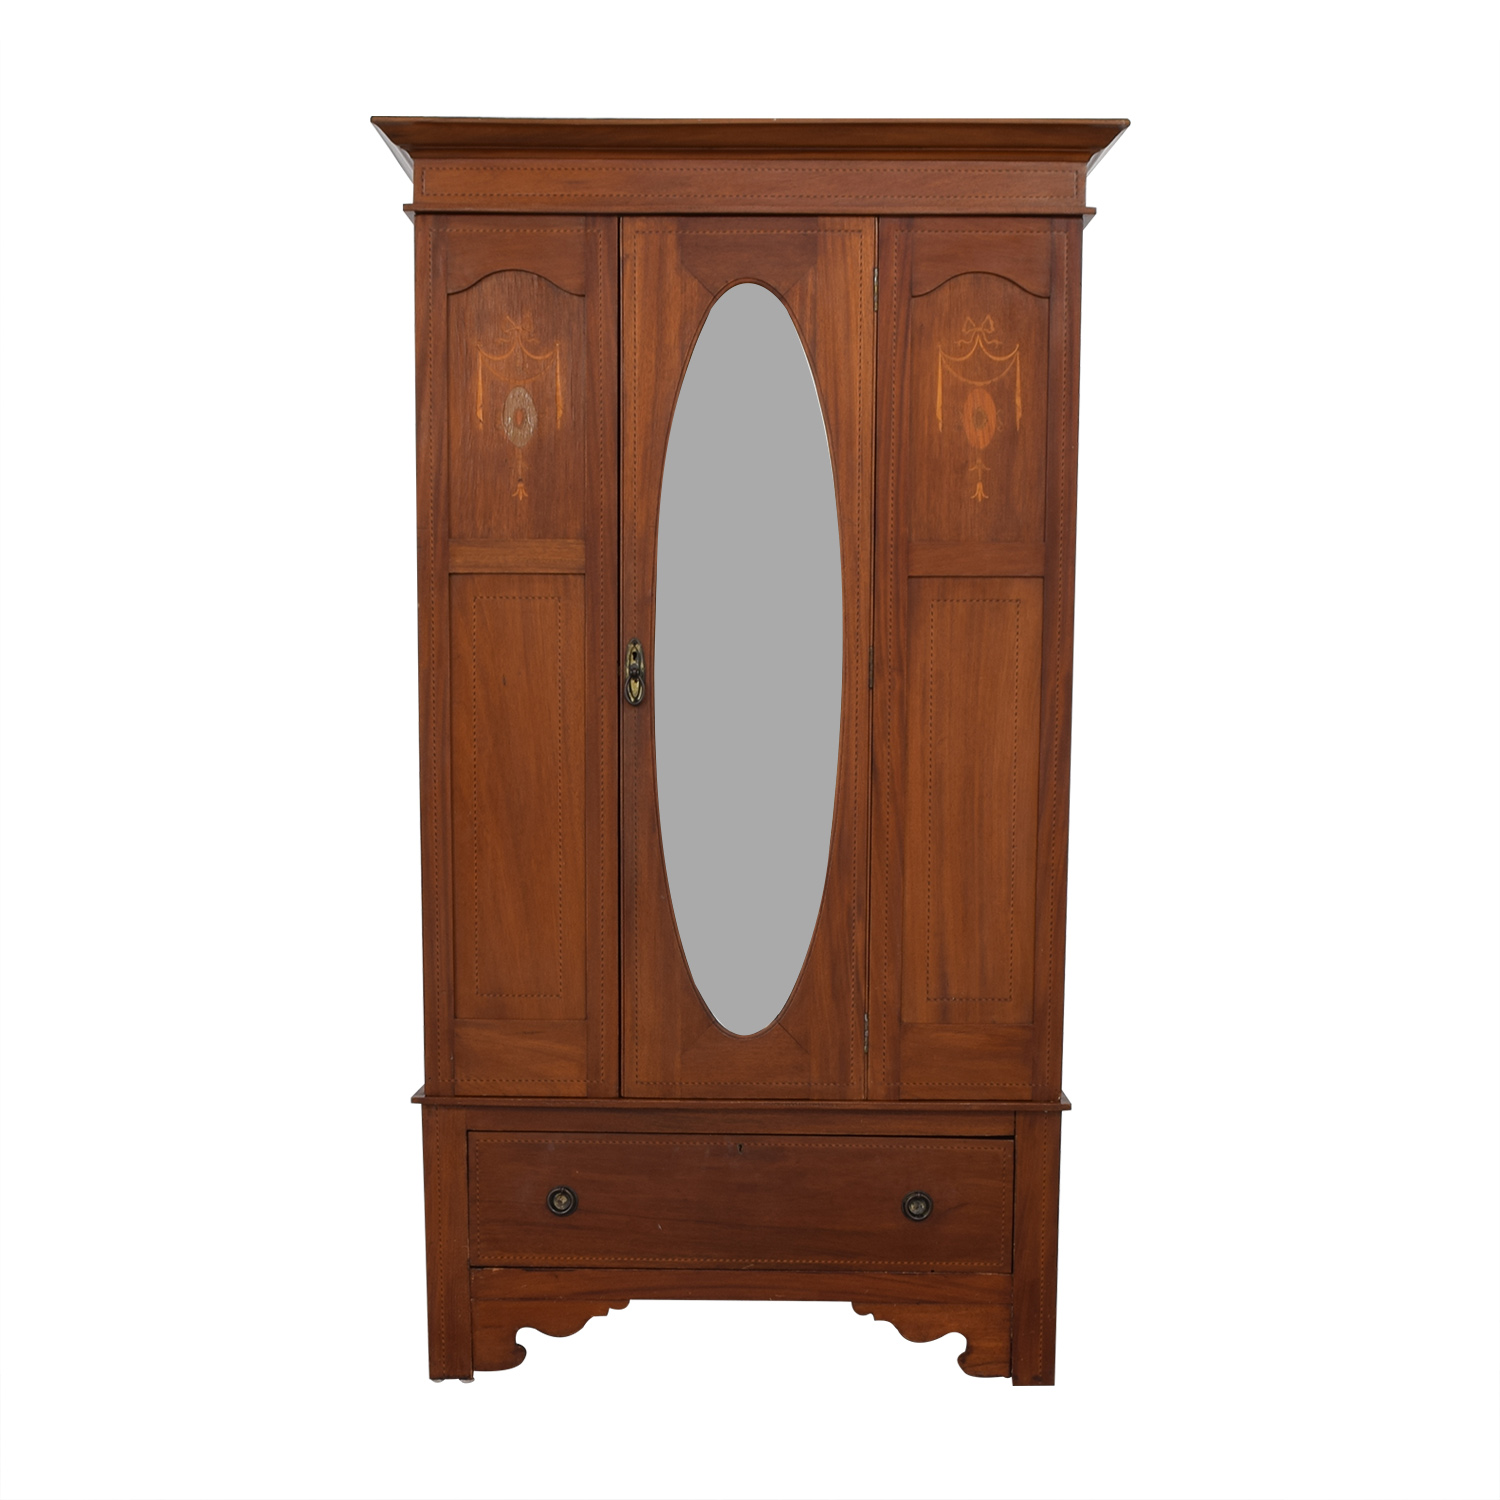 ABC Carpet & Home ABC Carpet & Home Armoire with Mirror Wardrobes & Armoires